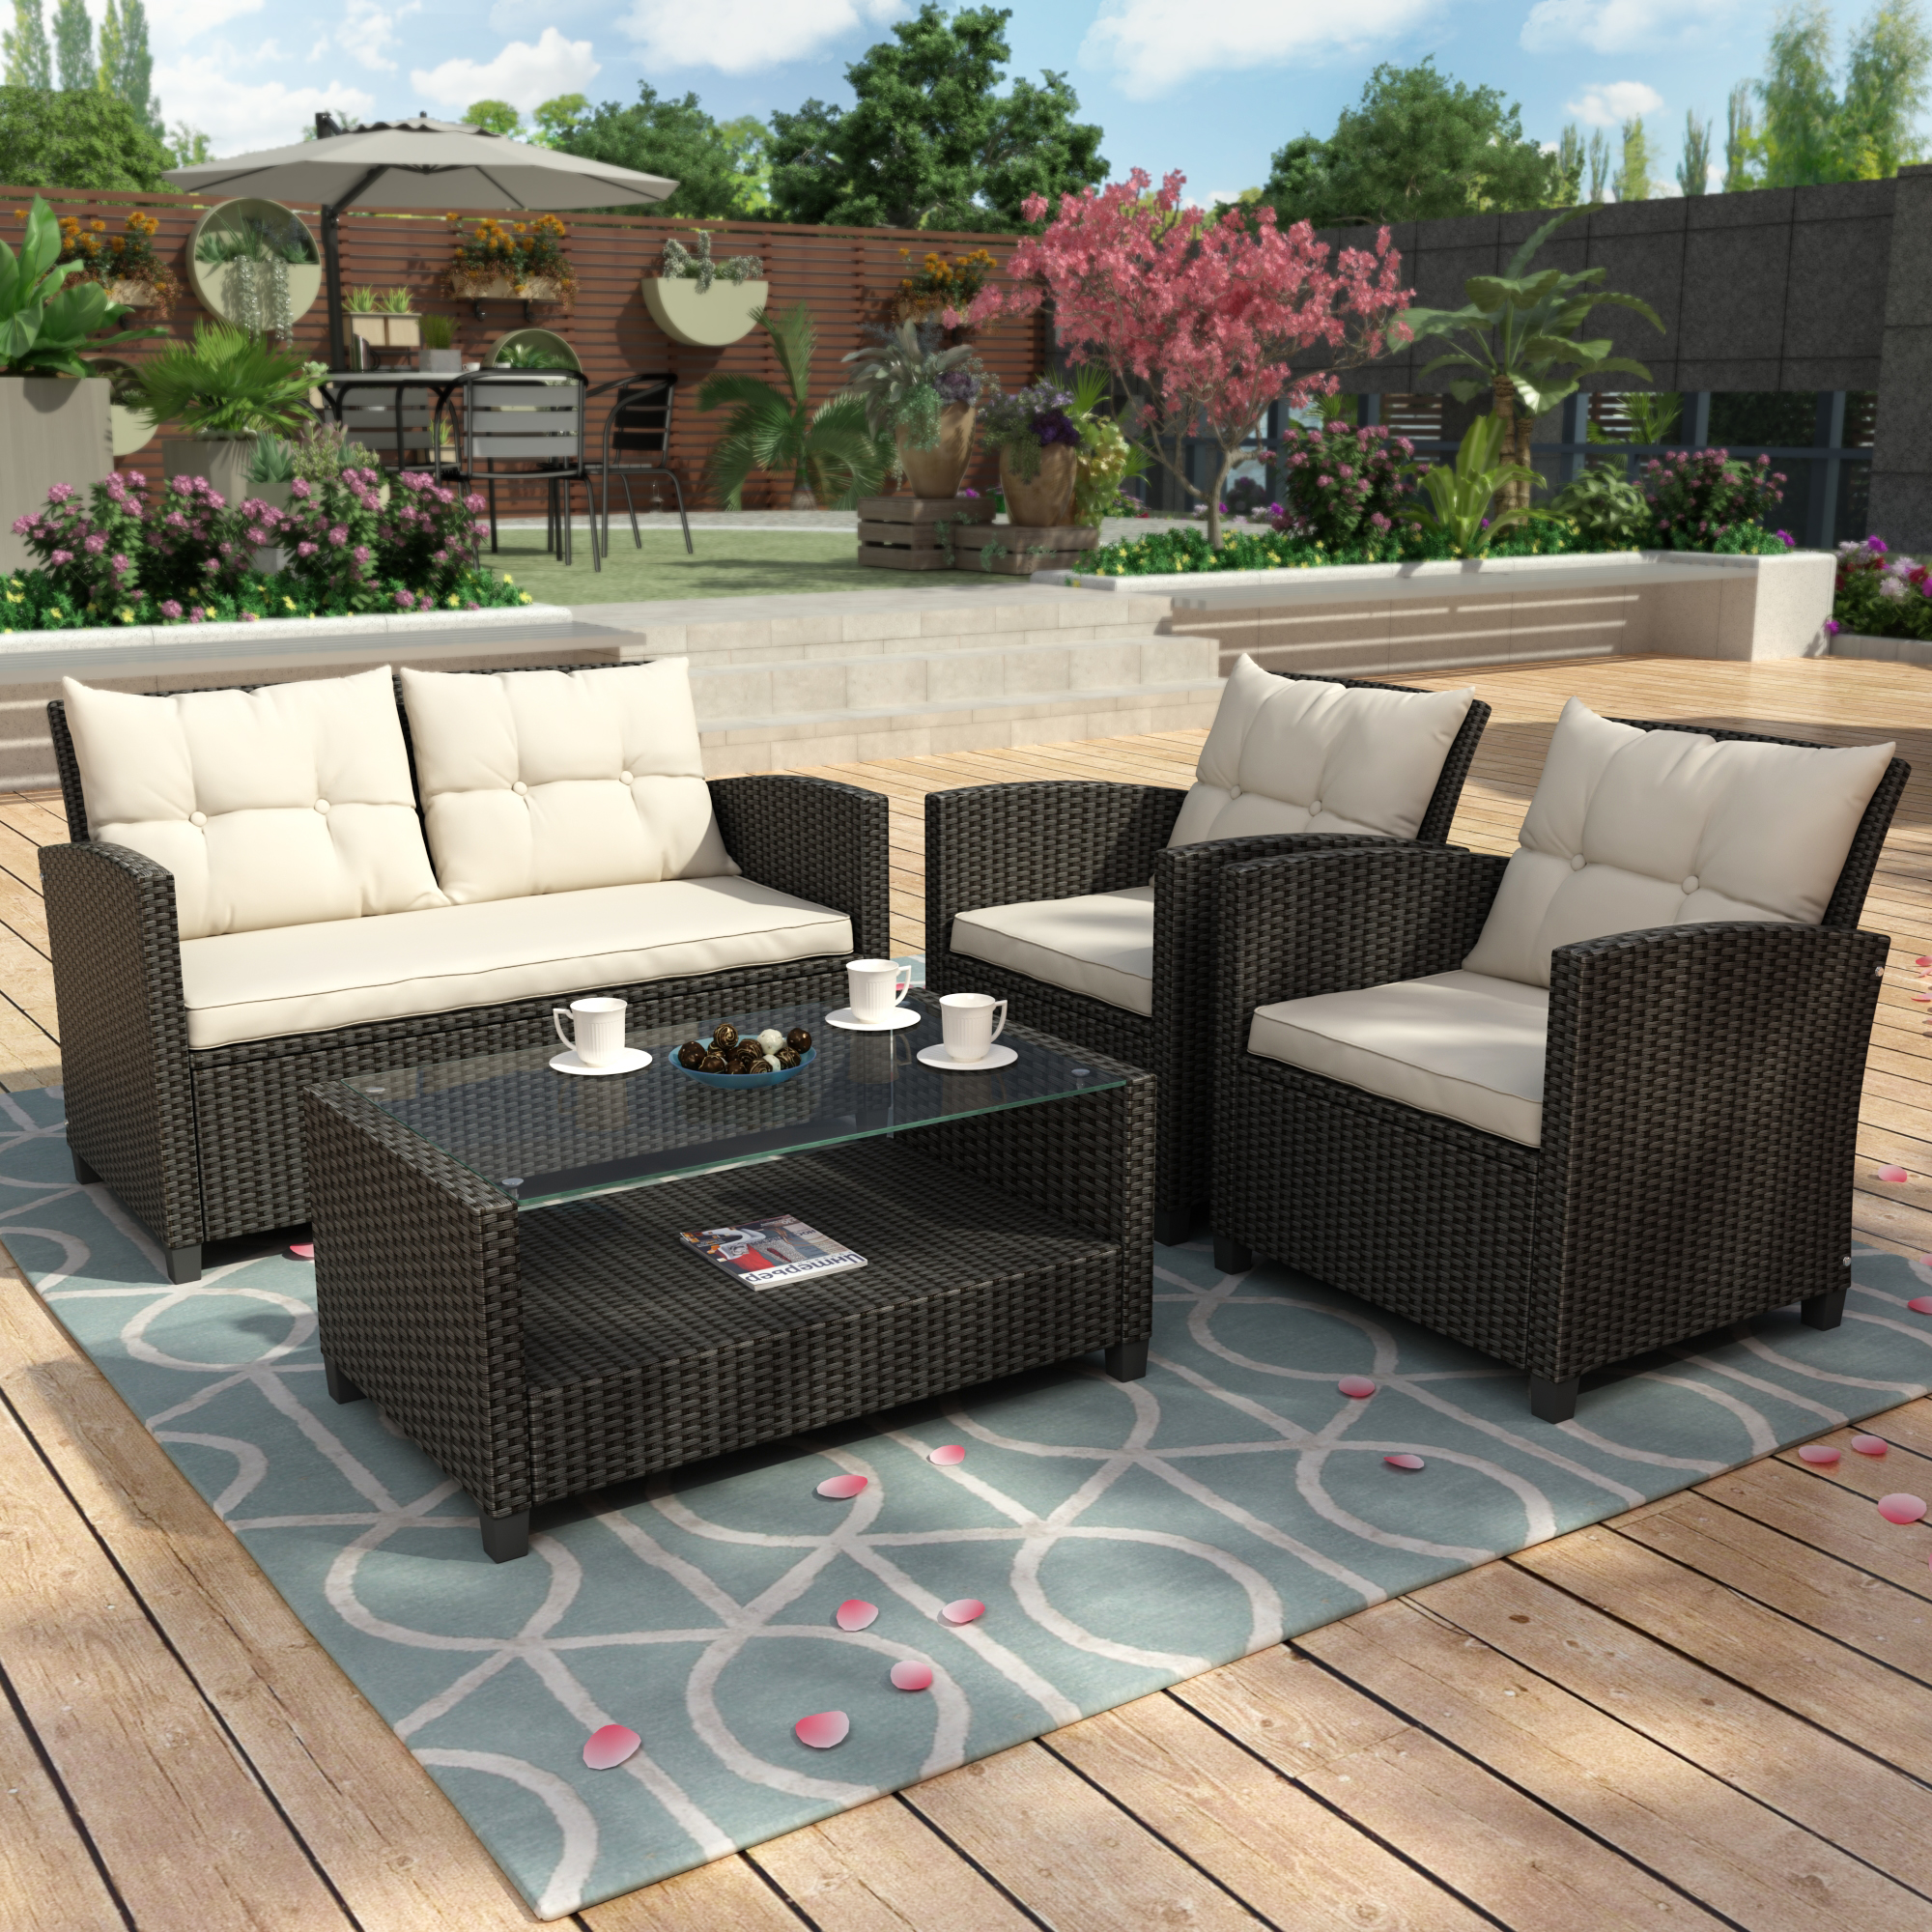 Clearance! Outdoor Wicker Sectional Sofa Set, 4 Piece ... on Outdoor Loveseat Sets id=37552